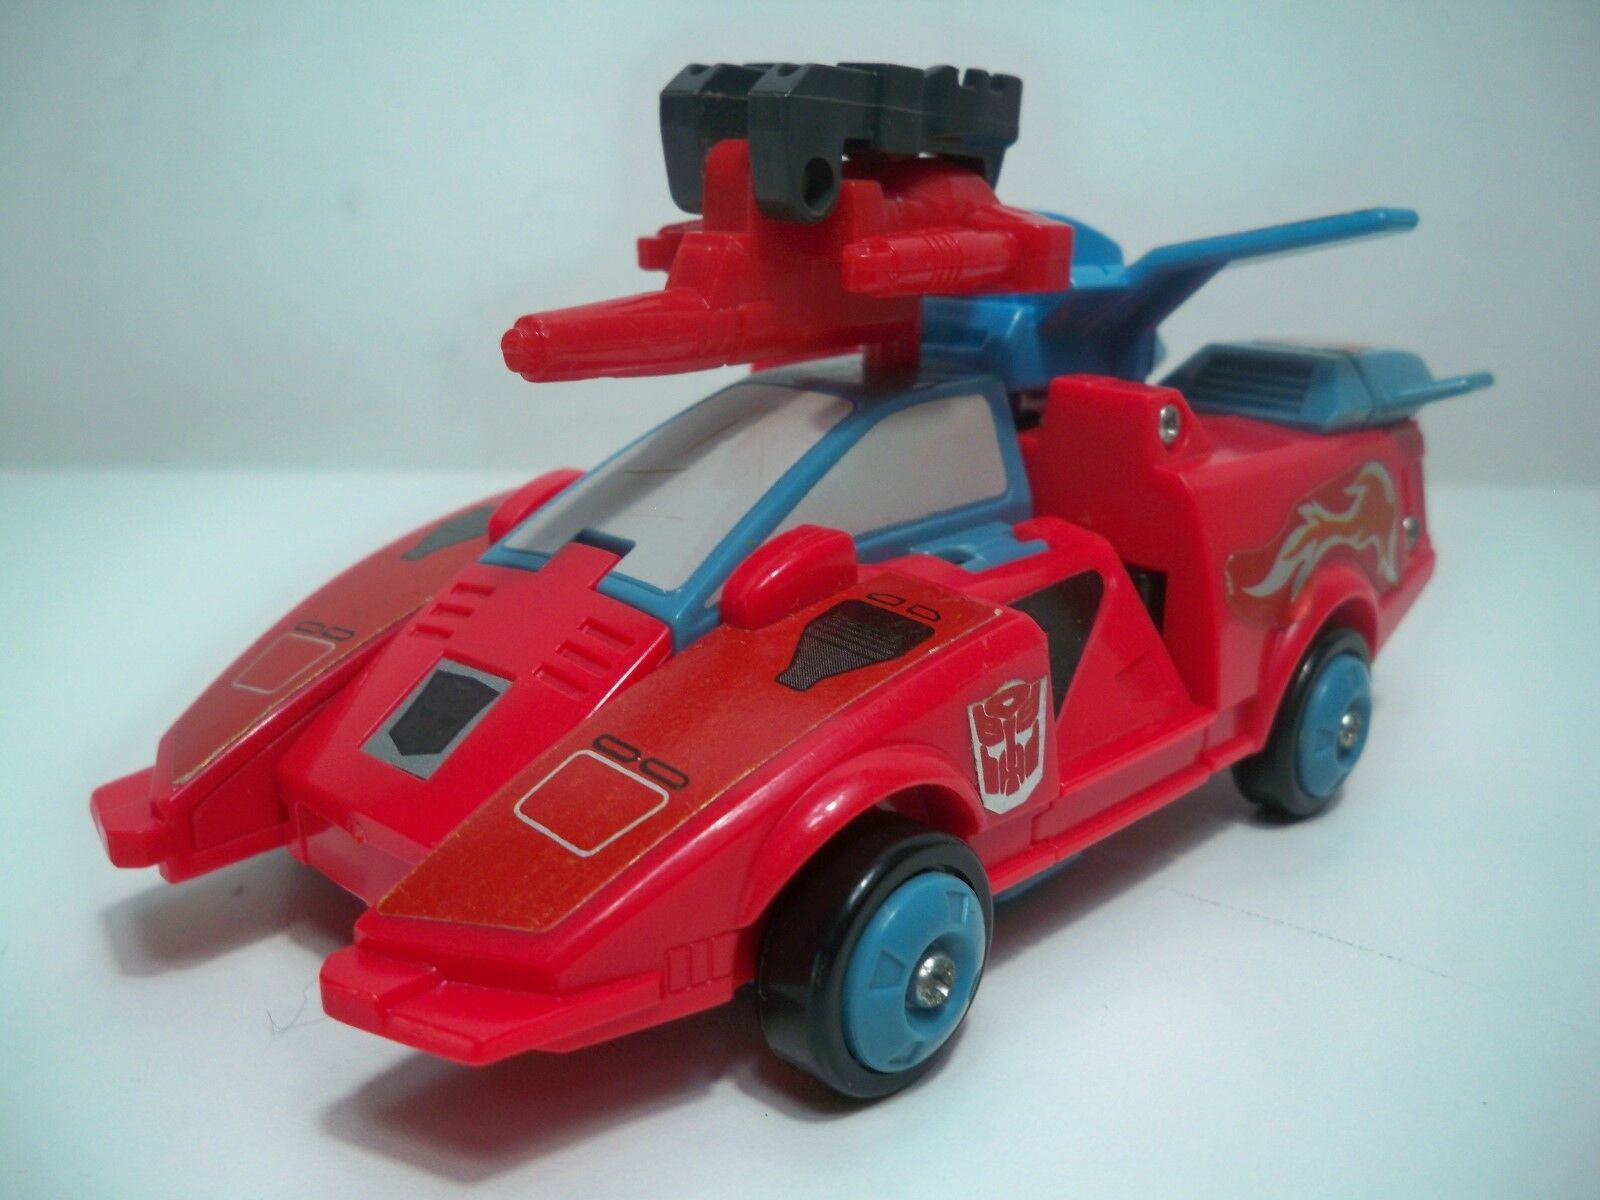 K172894 POINTBLANK LOOSE W  PEACEMAKER PEACEMAKER PEACEMAKER G1 TRANSFORMERS VINTAGE 100% COMPLETE 55bc8b